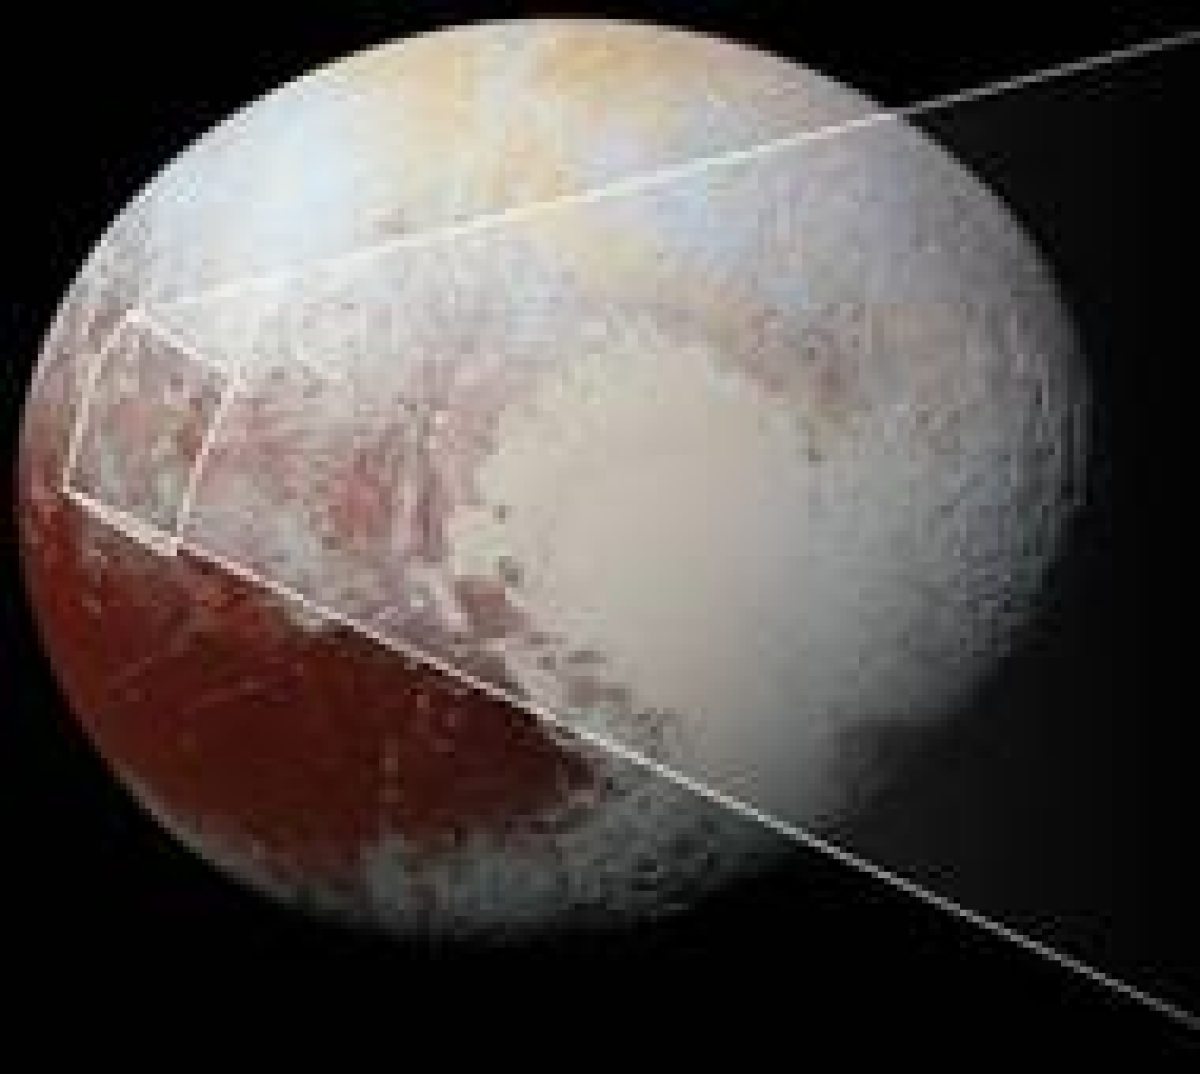 NASA discovers 'bite-mark' on Pluto's surface